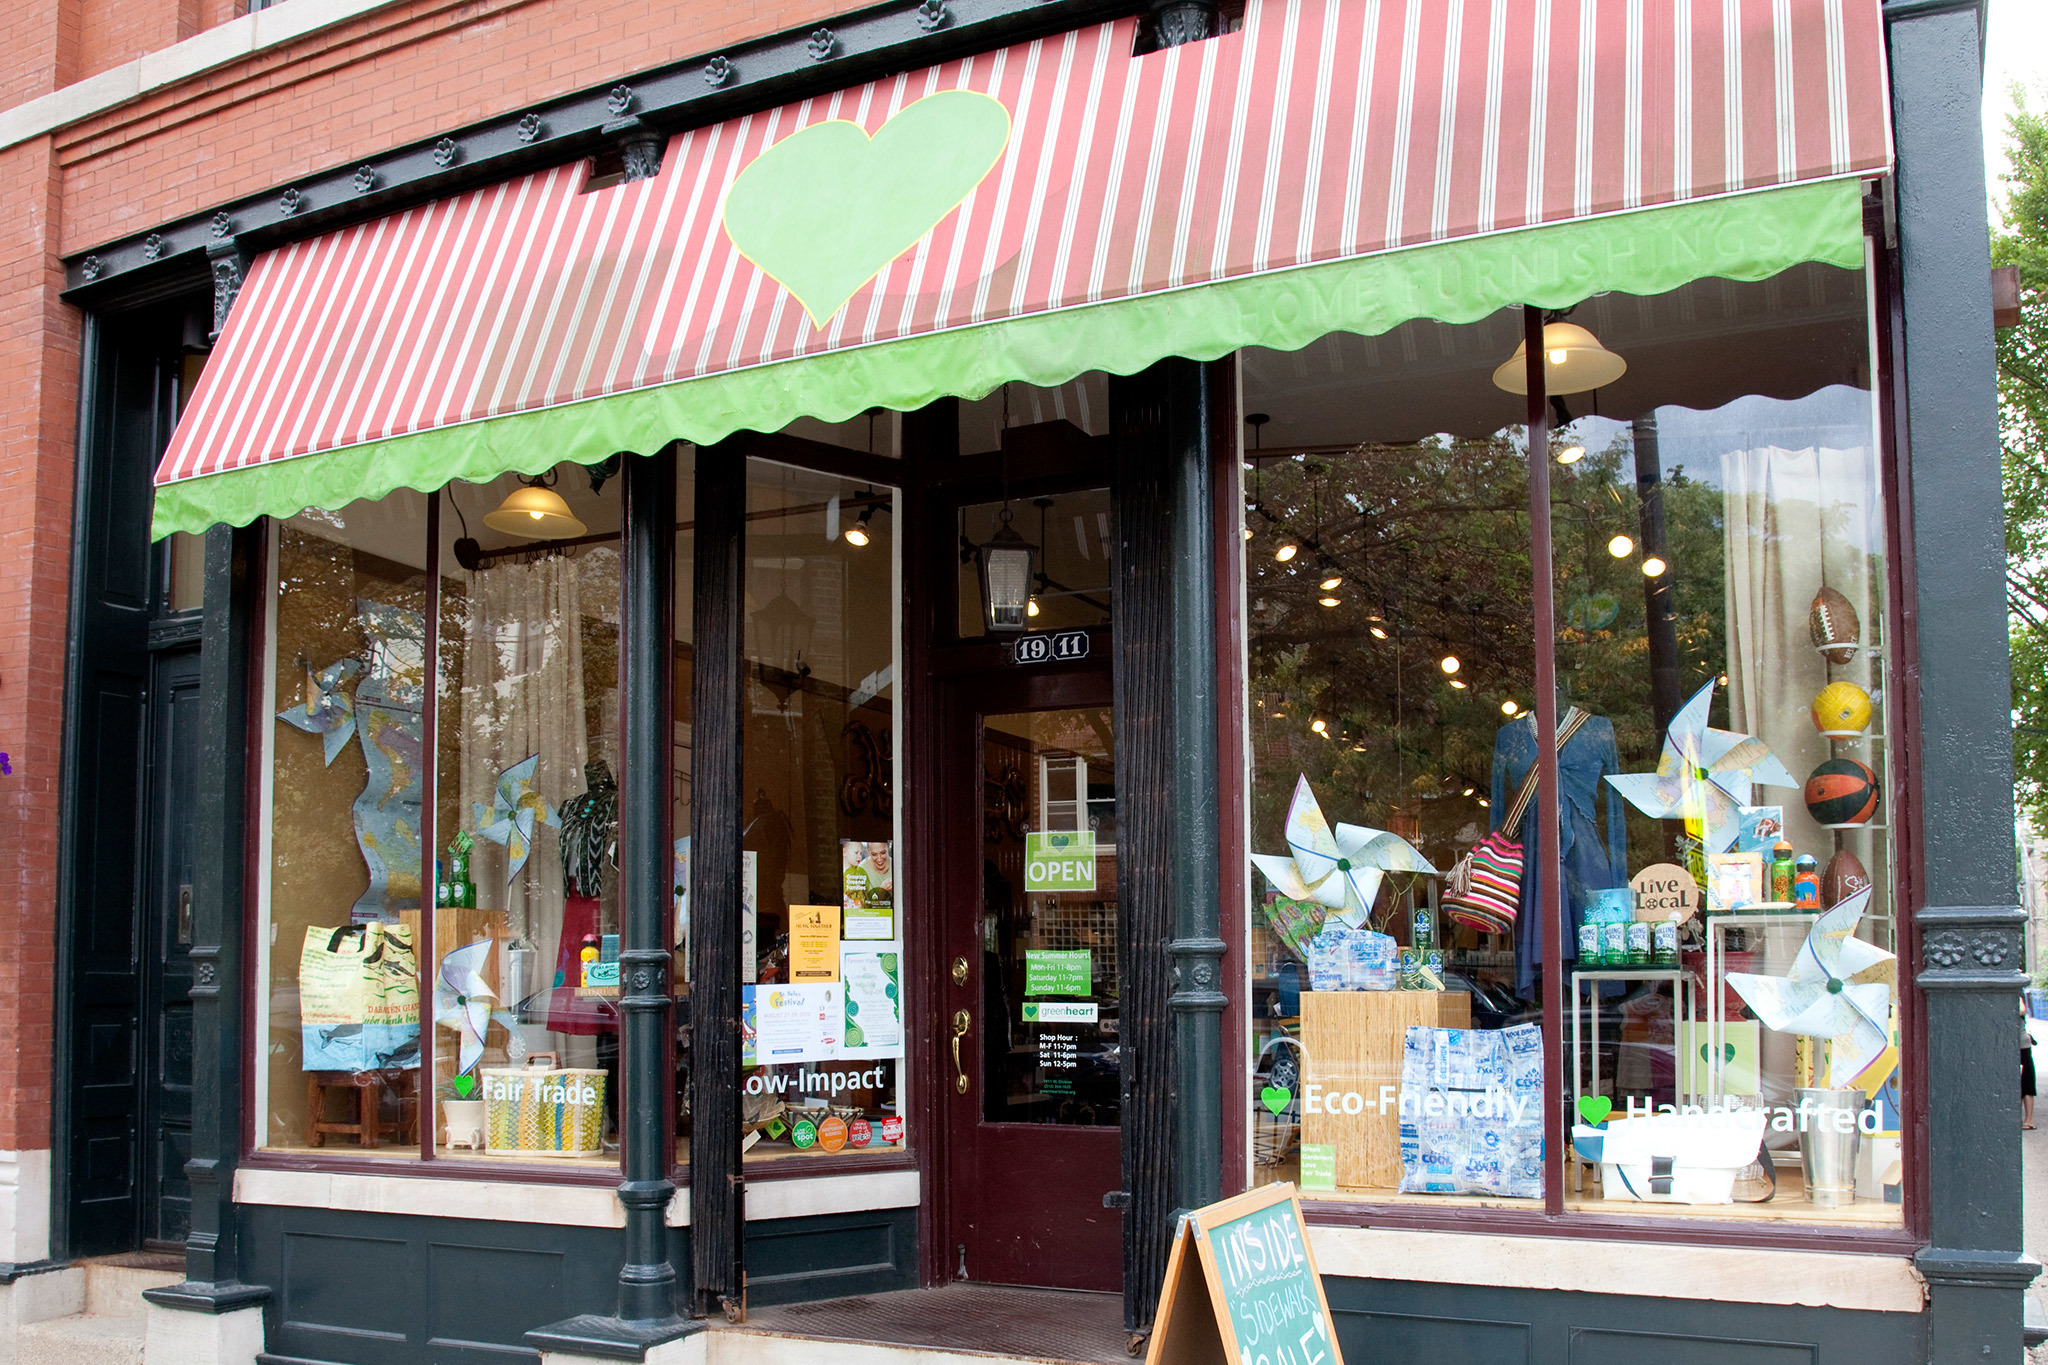 Division Street Stores- Greenheart- 289, Sept 9